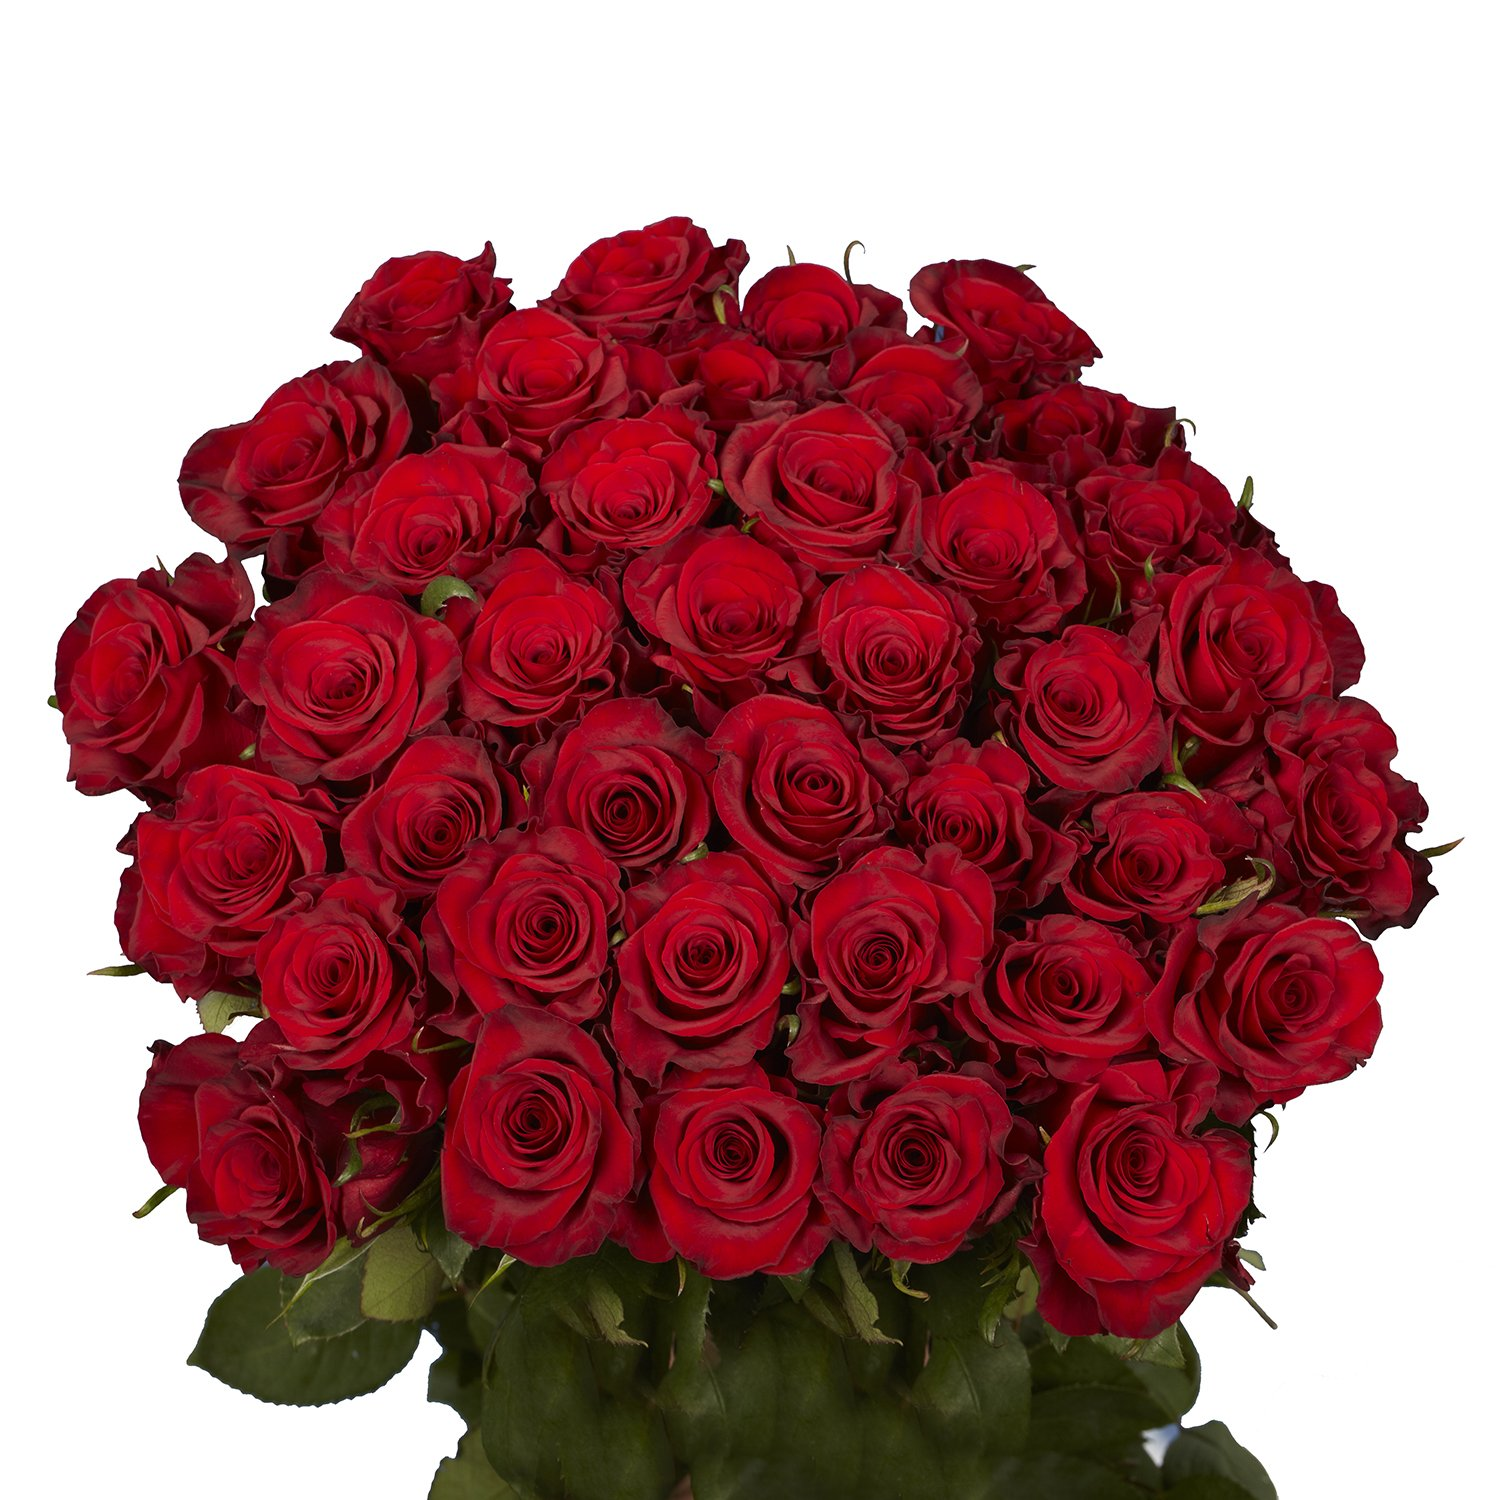 GlobalRose 50 Red Roses - Beautiful Fresh Cut Flowers- Lovely Natural Blooms by GlobalRose